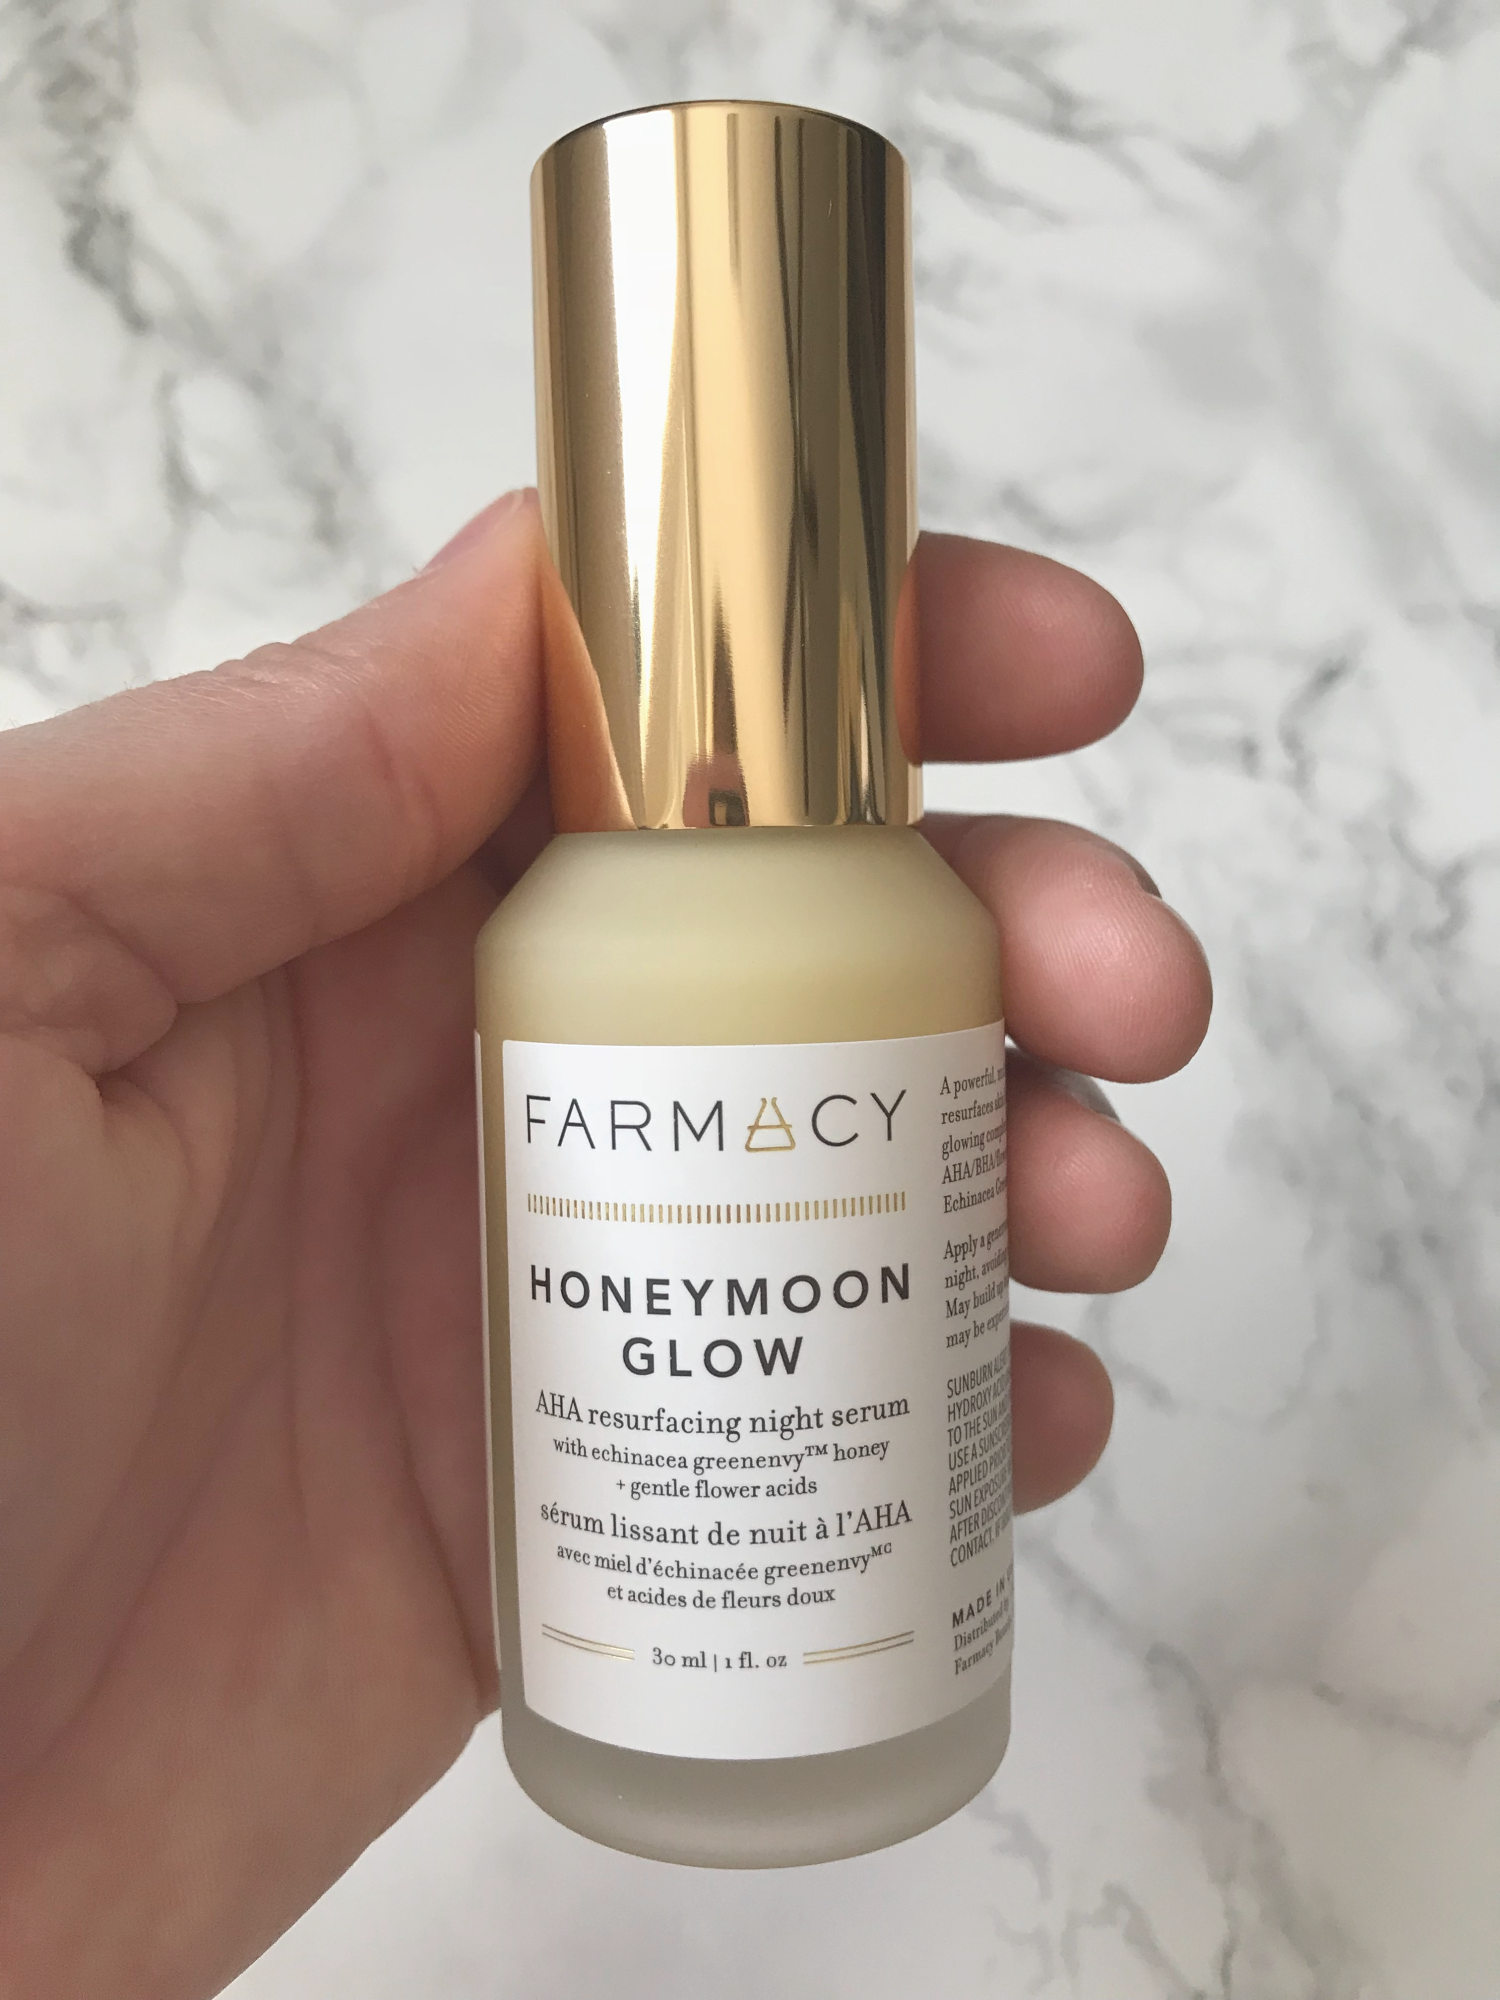 Farmacy Honeymoon Glow AHA Resurfacing Night Serum